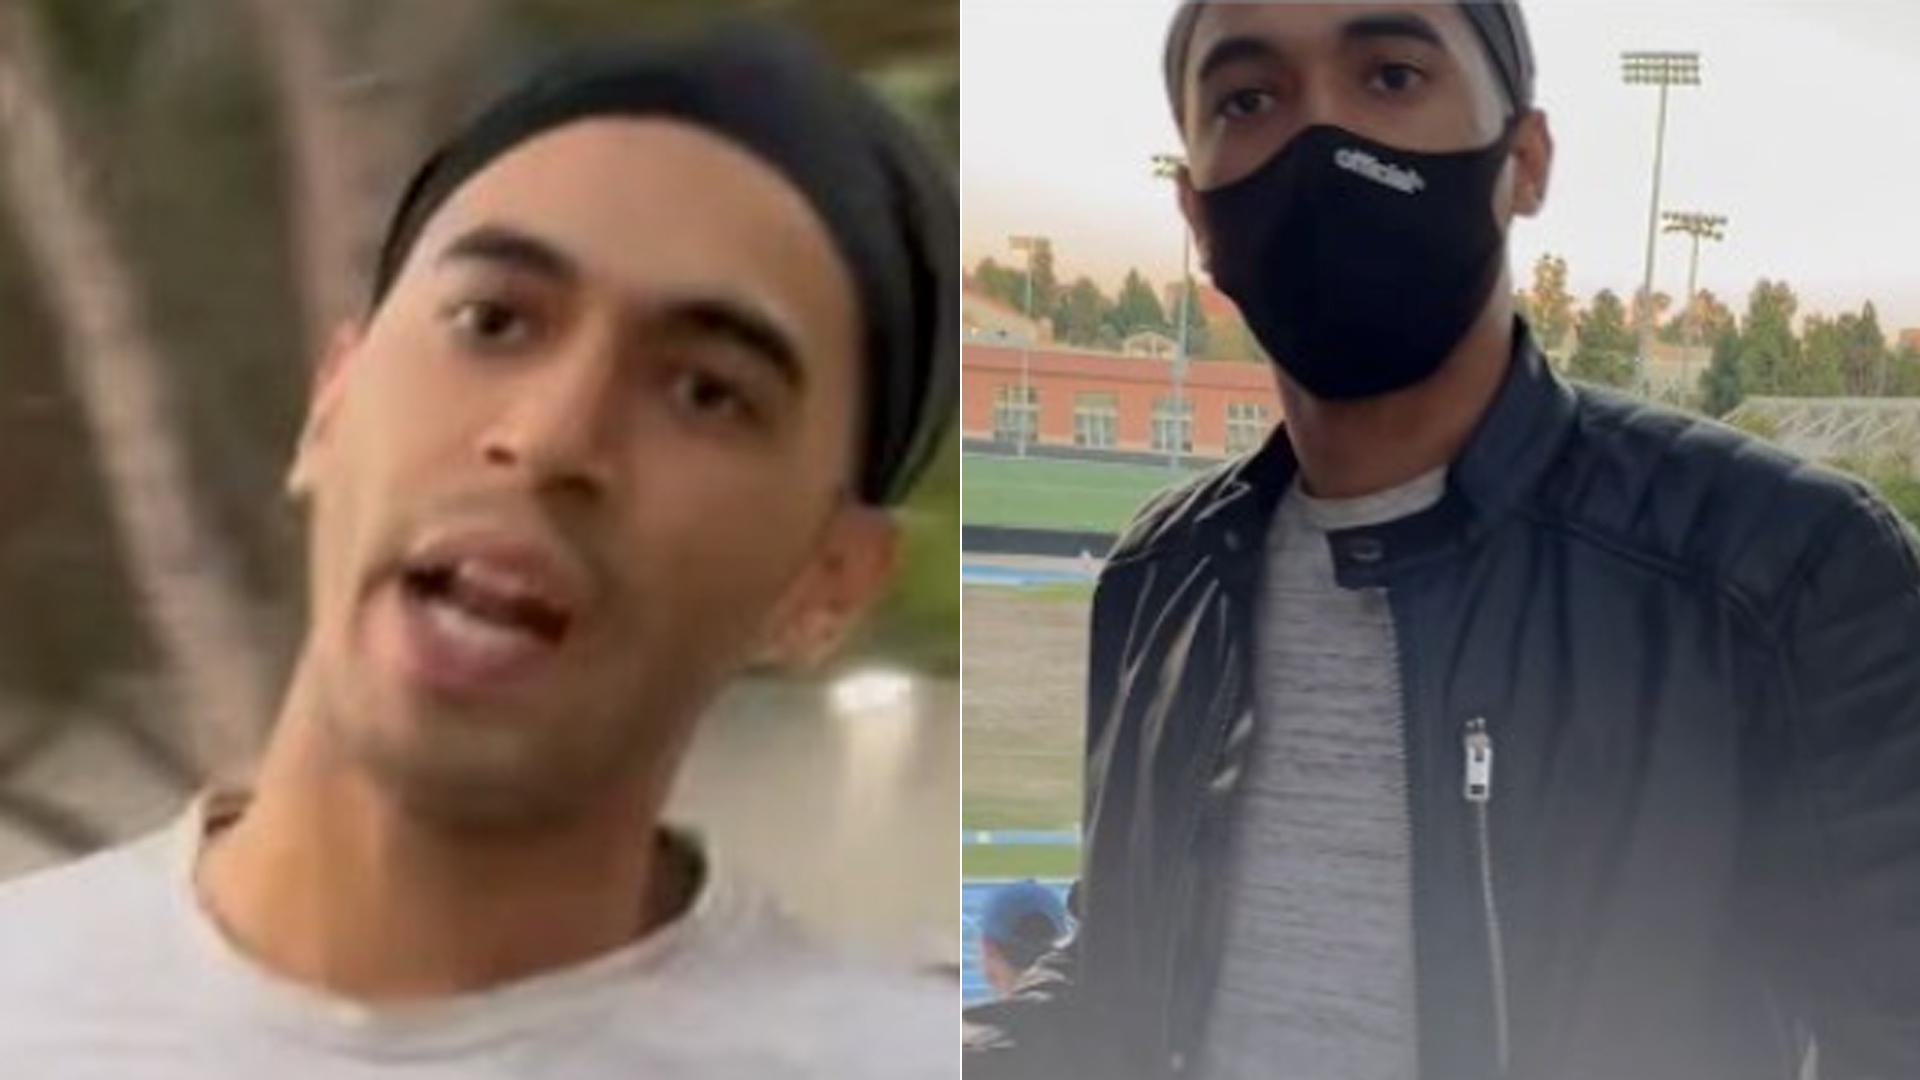 UCLA police on Oct. 27, 2021 released these images of a man sought in assaults at Drake Stadium.